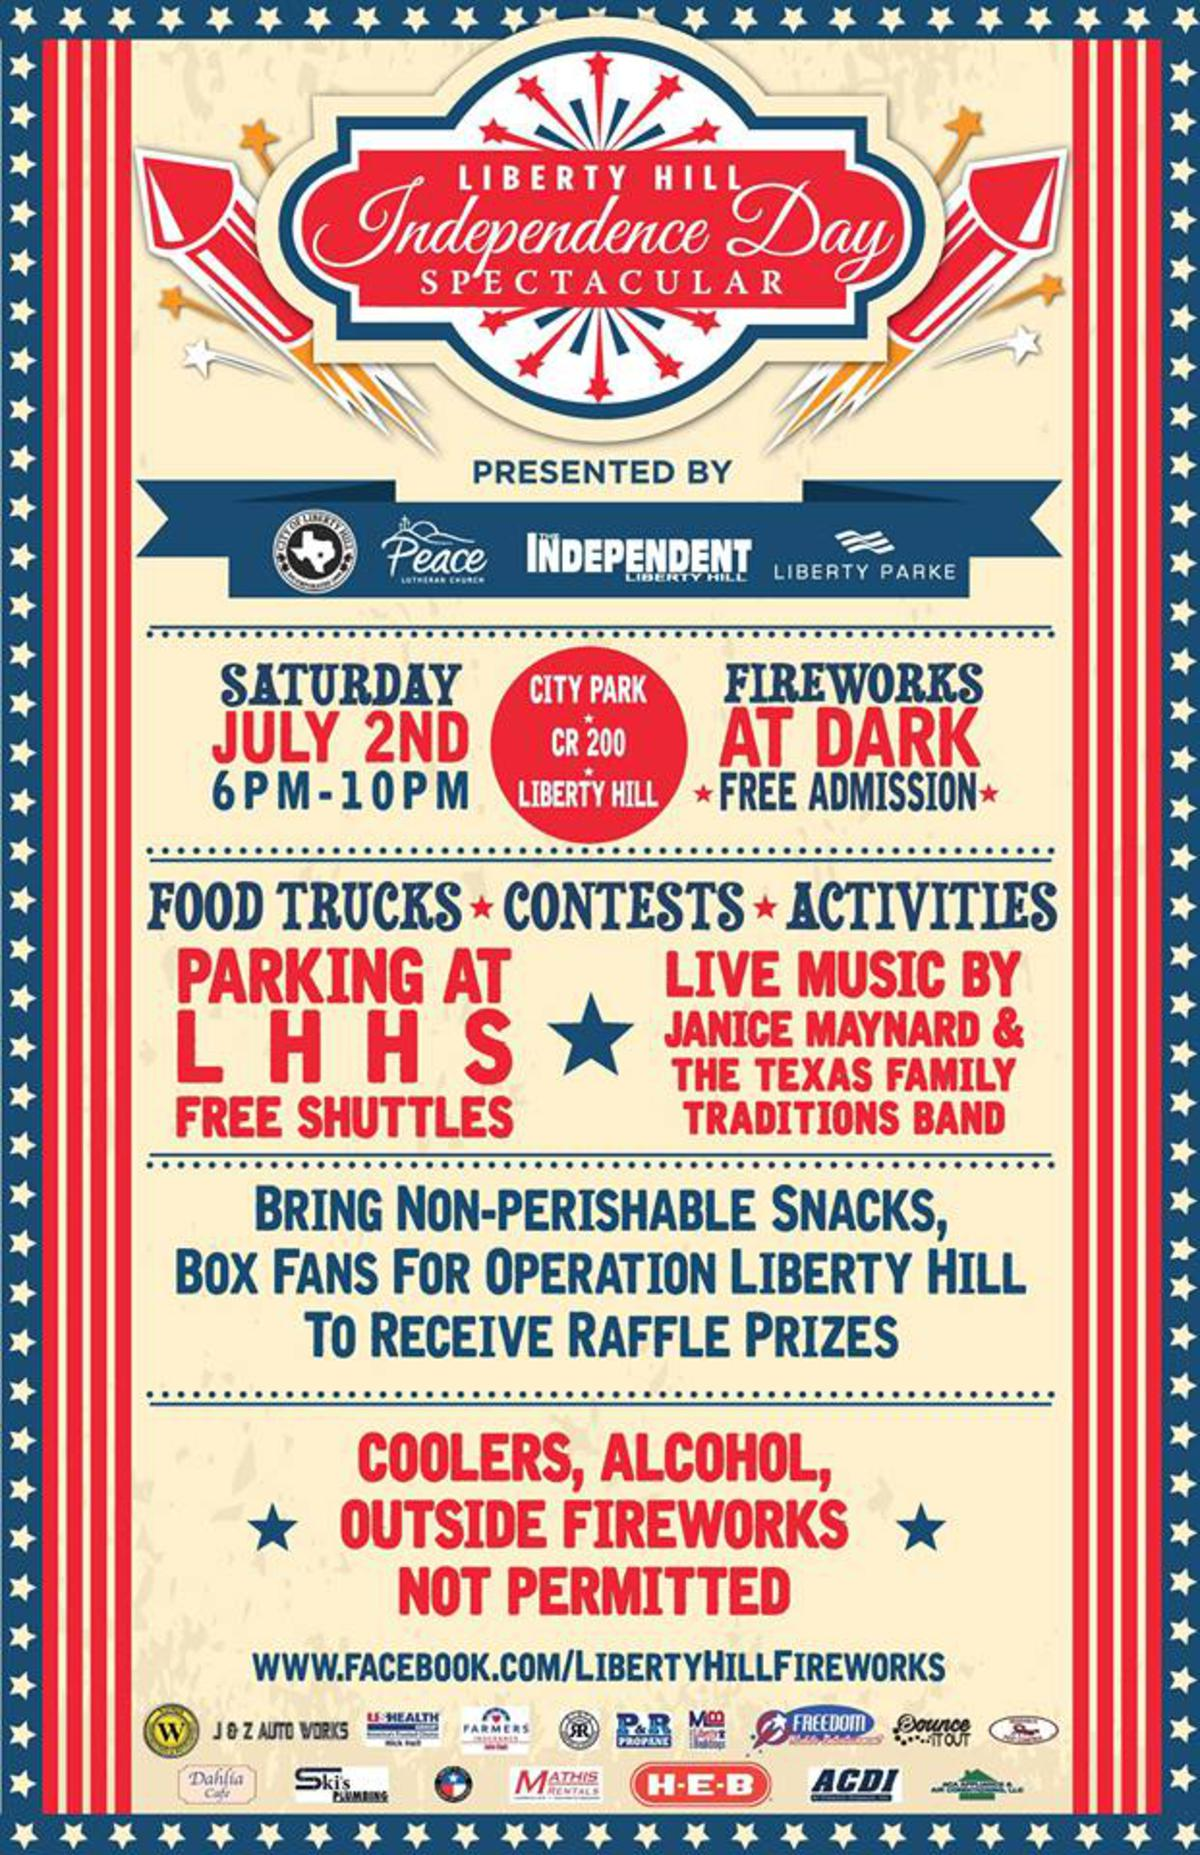 Liberty Hill Independence Day Spectacular